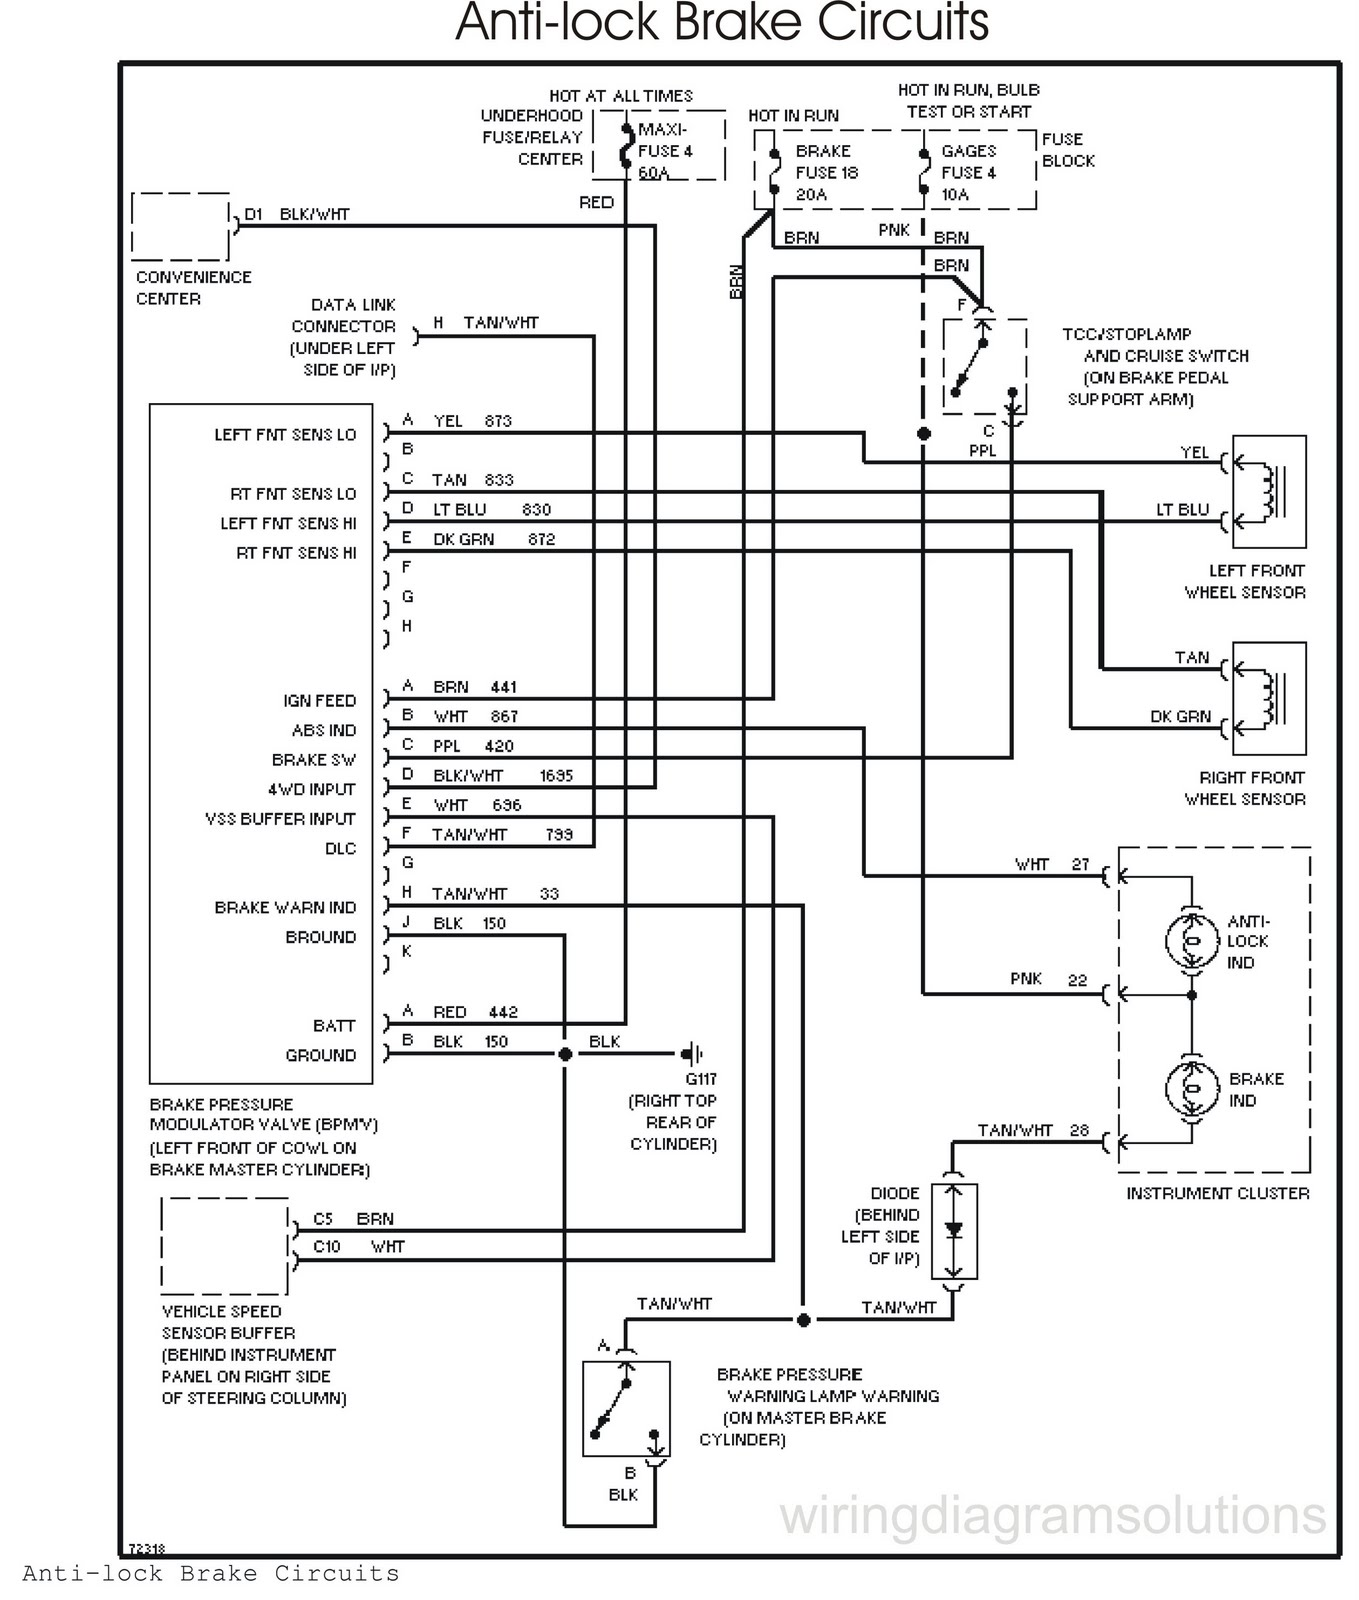 98 tahoe ignition switch wiring diagram [ 1359 x 1600 Pixel ]